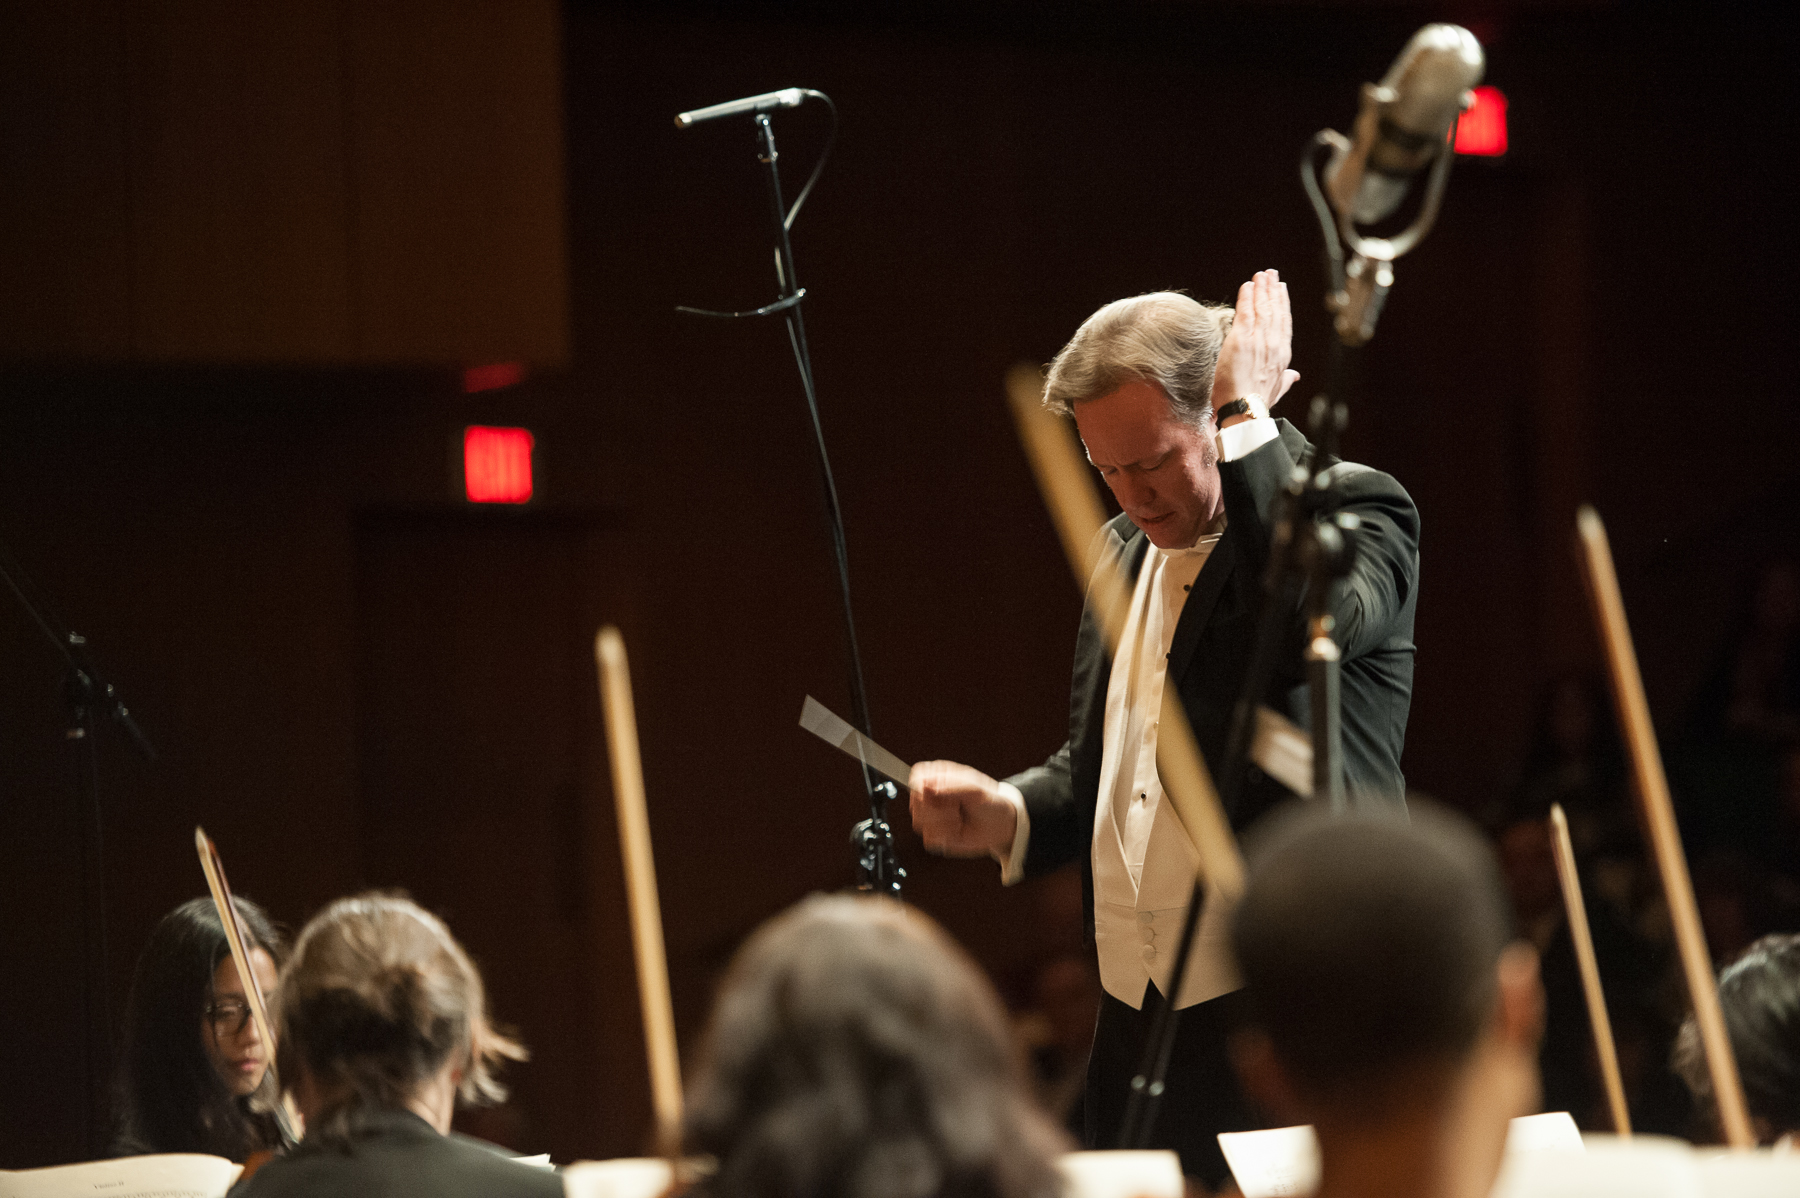 Justin Bischof to Conduct Strauss Metamorphosen and Shostakovich's Chamber Symphony at the Church of the Epiphany on March 1, 2018, at 7 pm